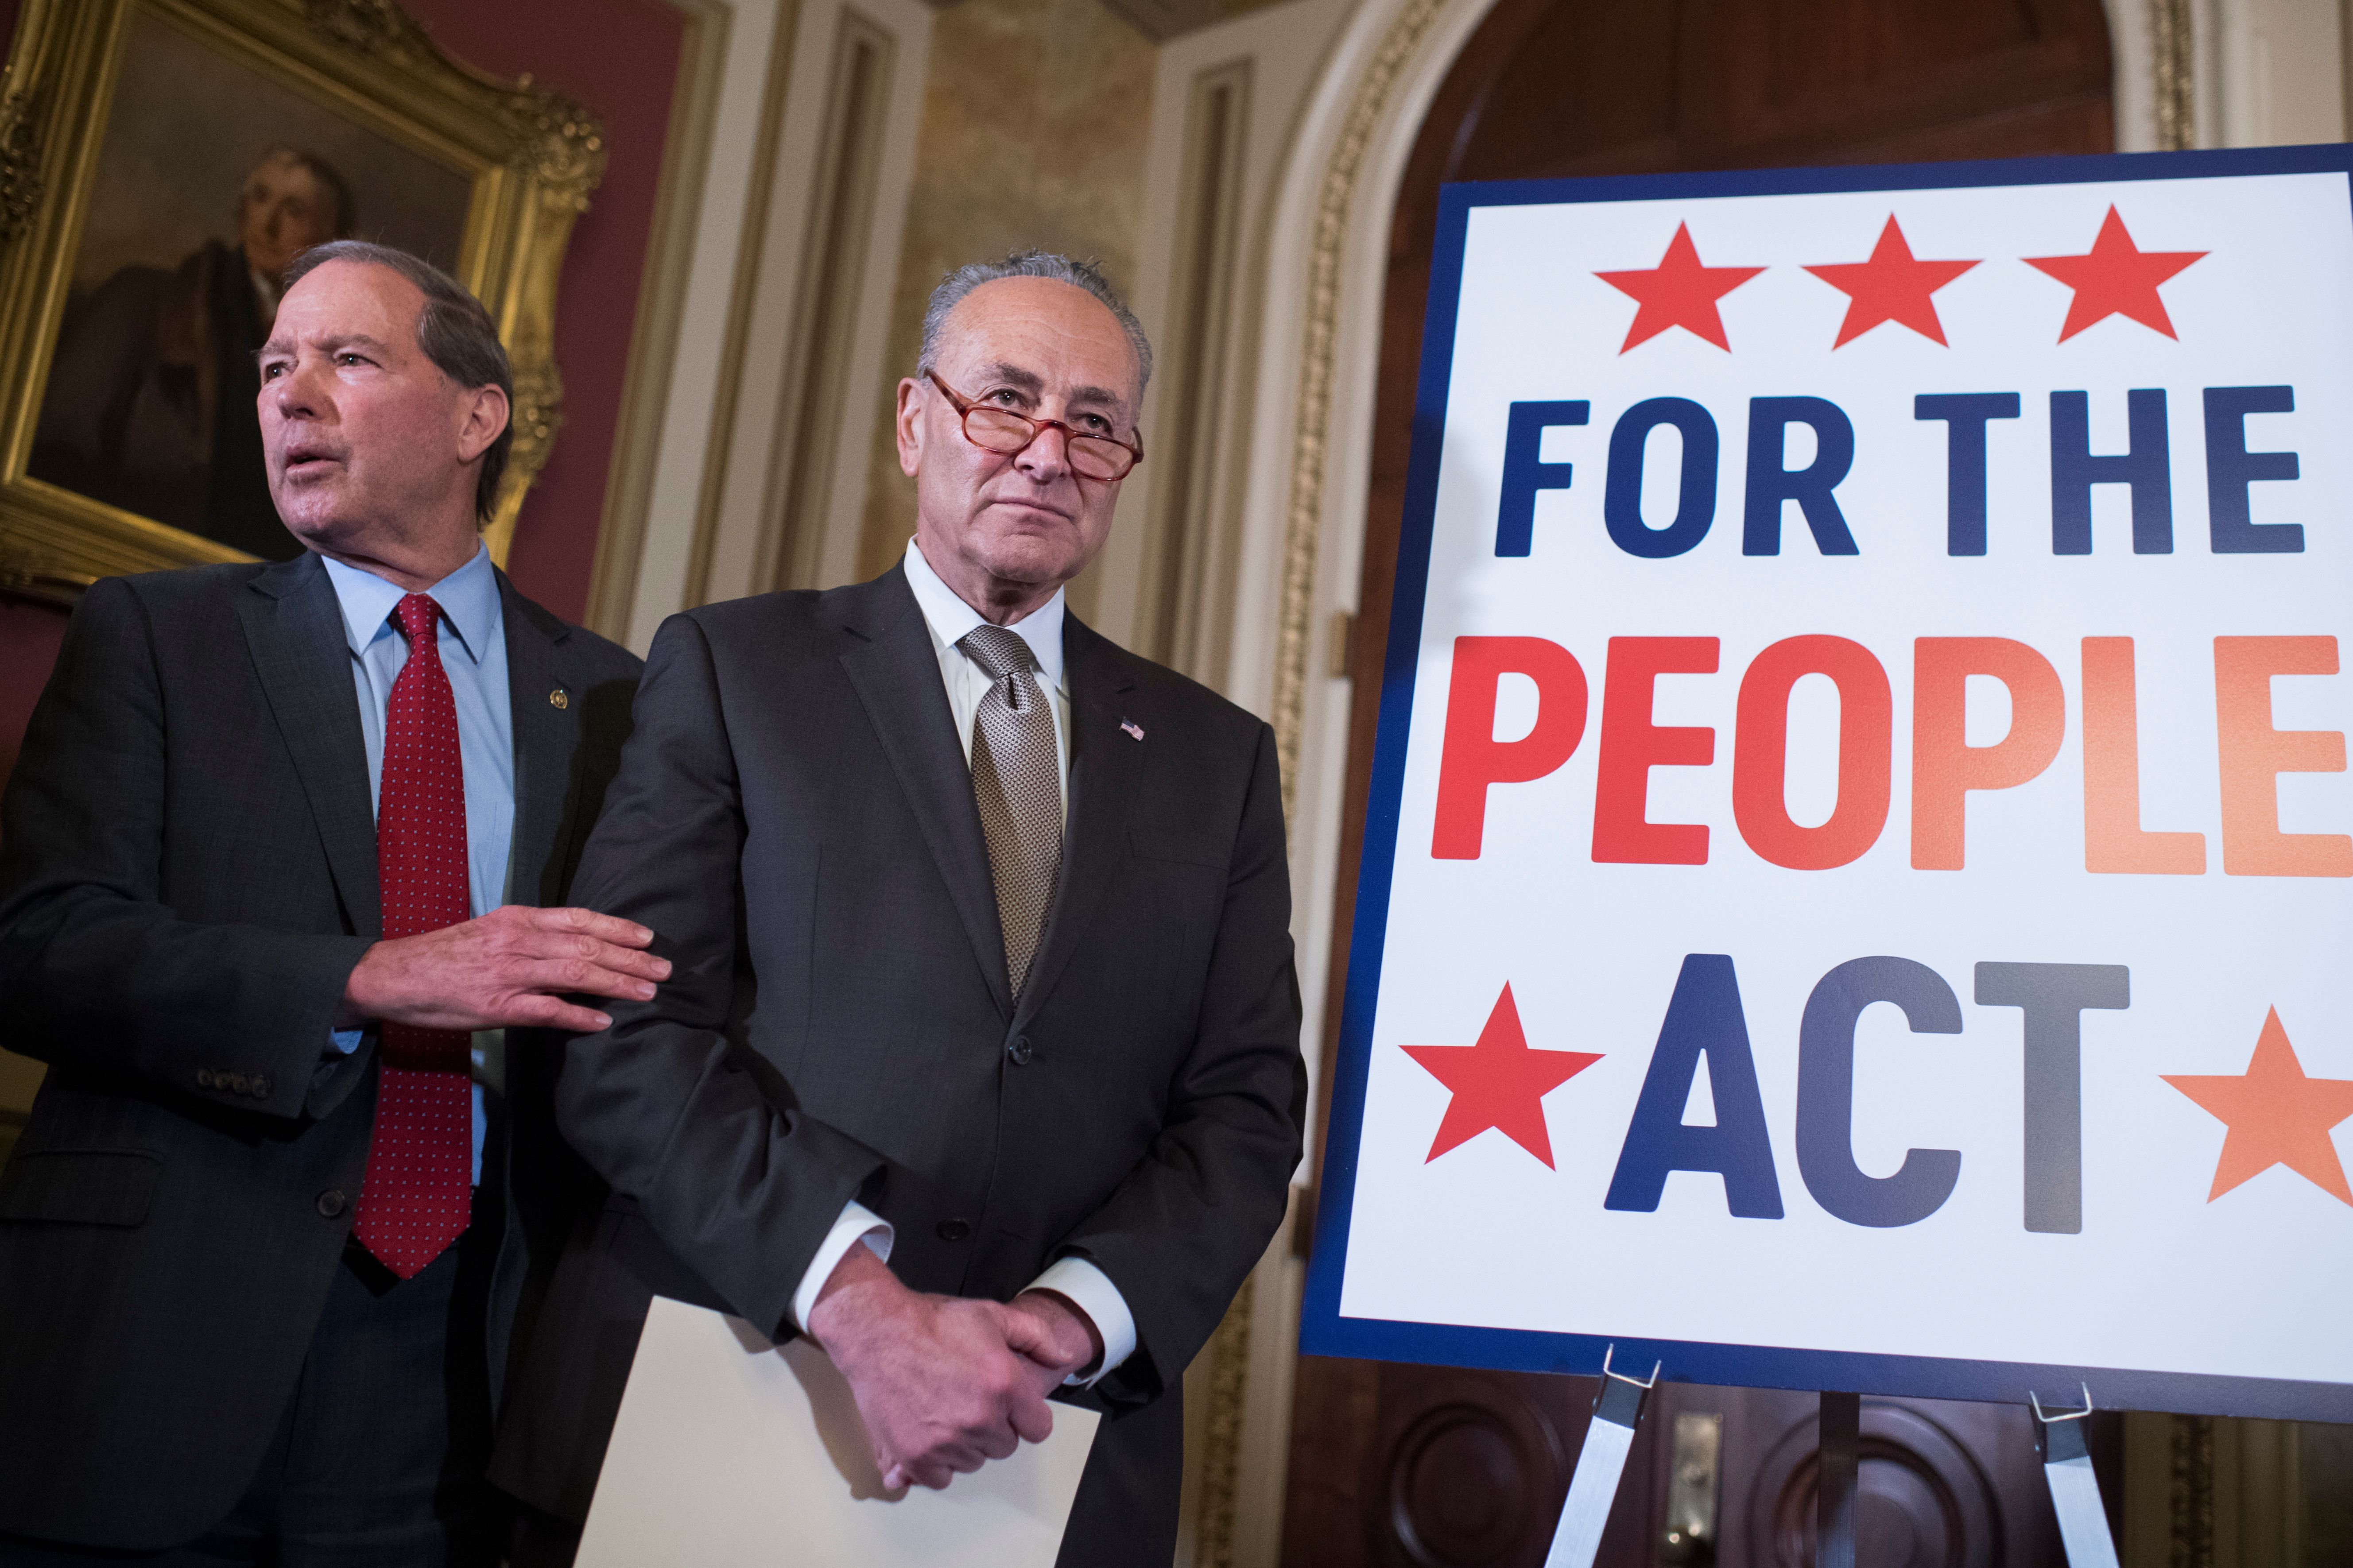 Then-Senate Minority Leader Charles Schumer (center) and then-Sen. Tom Udall (D-N.M.) attend a news conference about the For